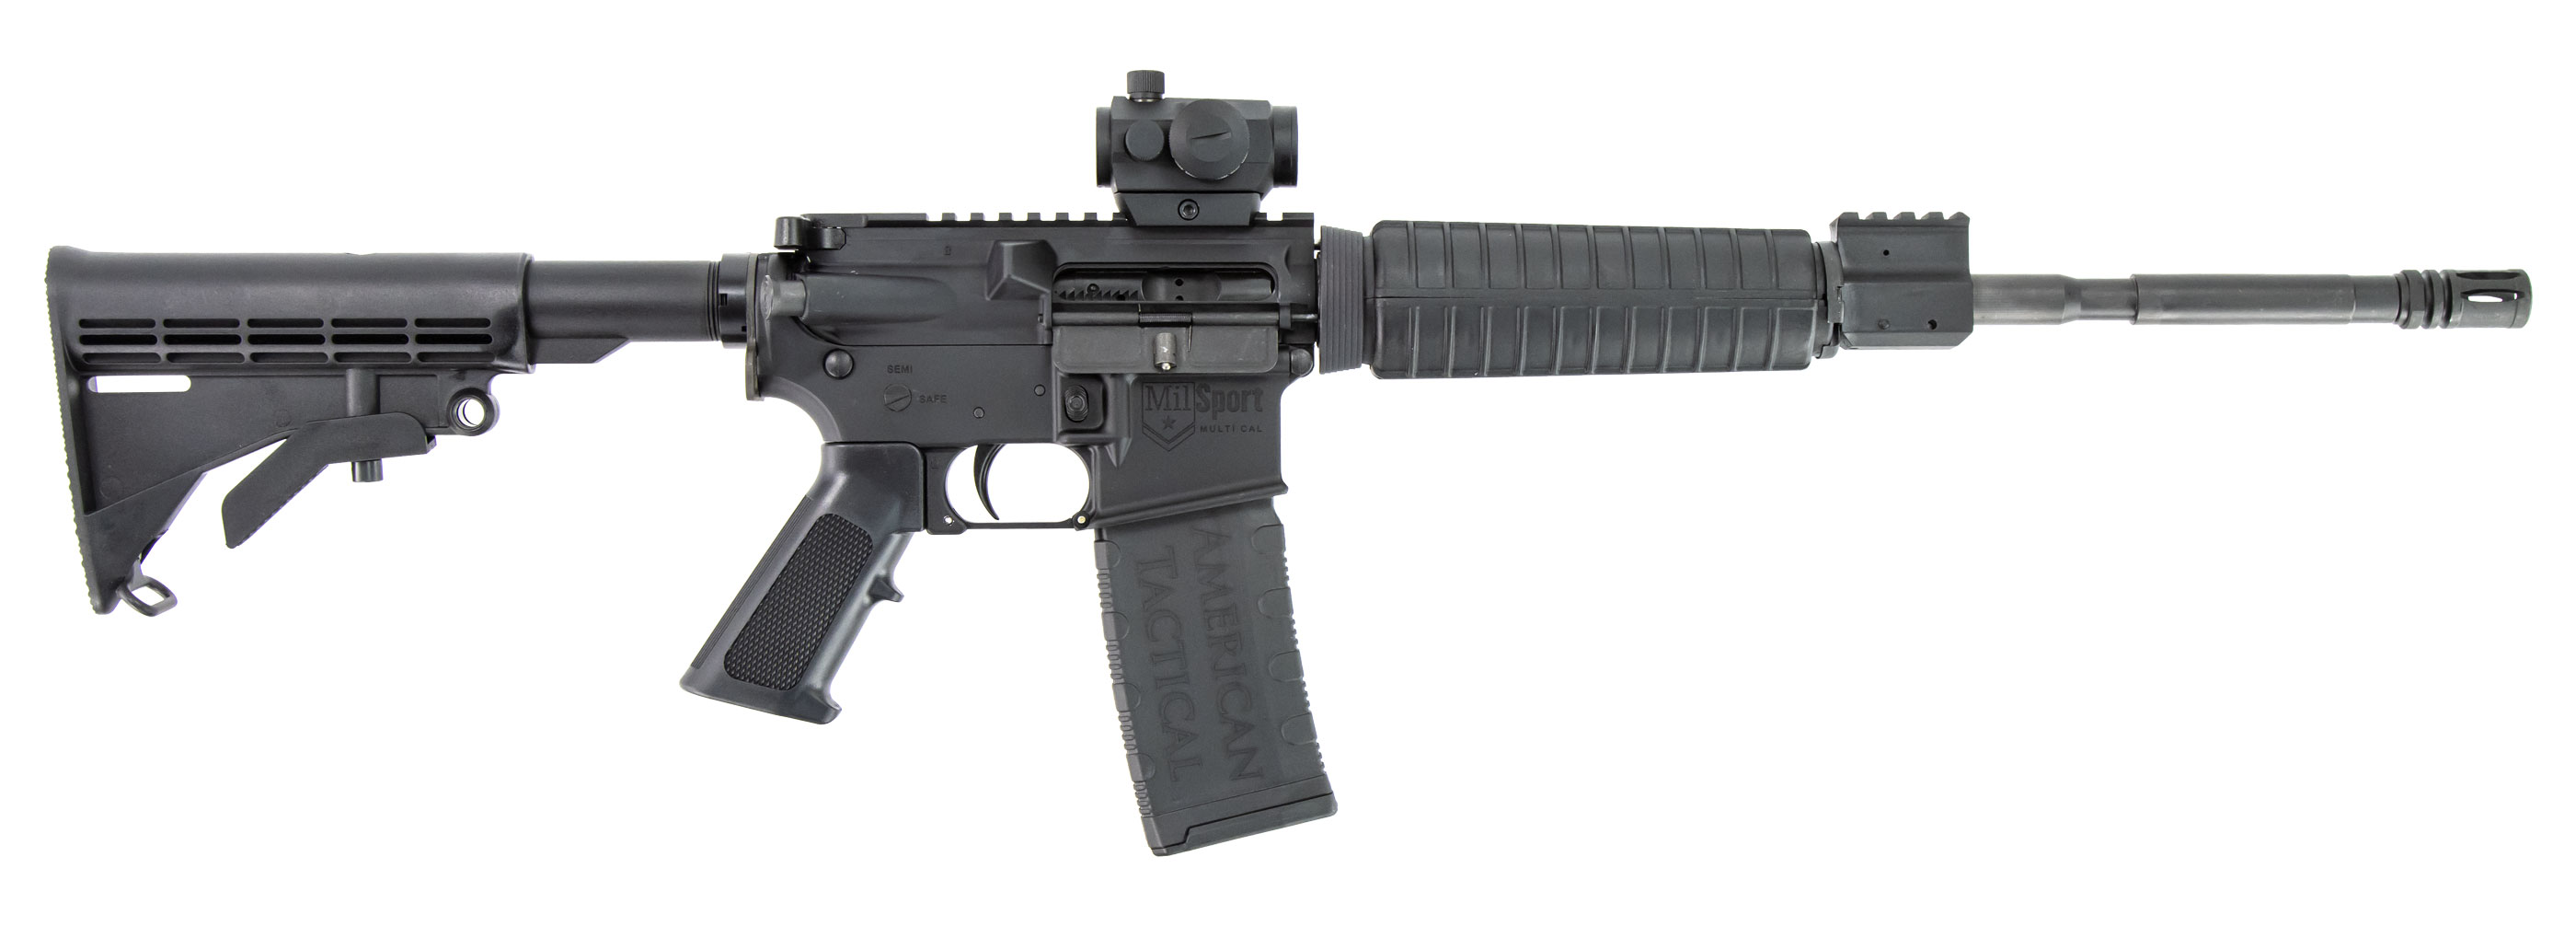 MILSPORT 5.56  w/ Red Dot